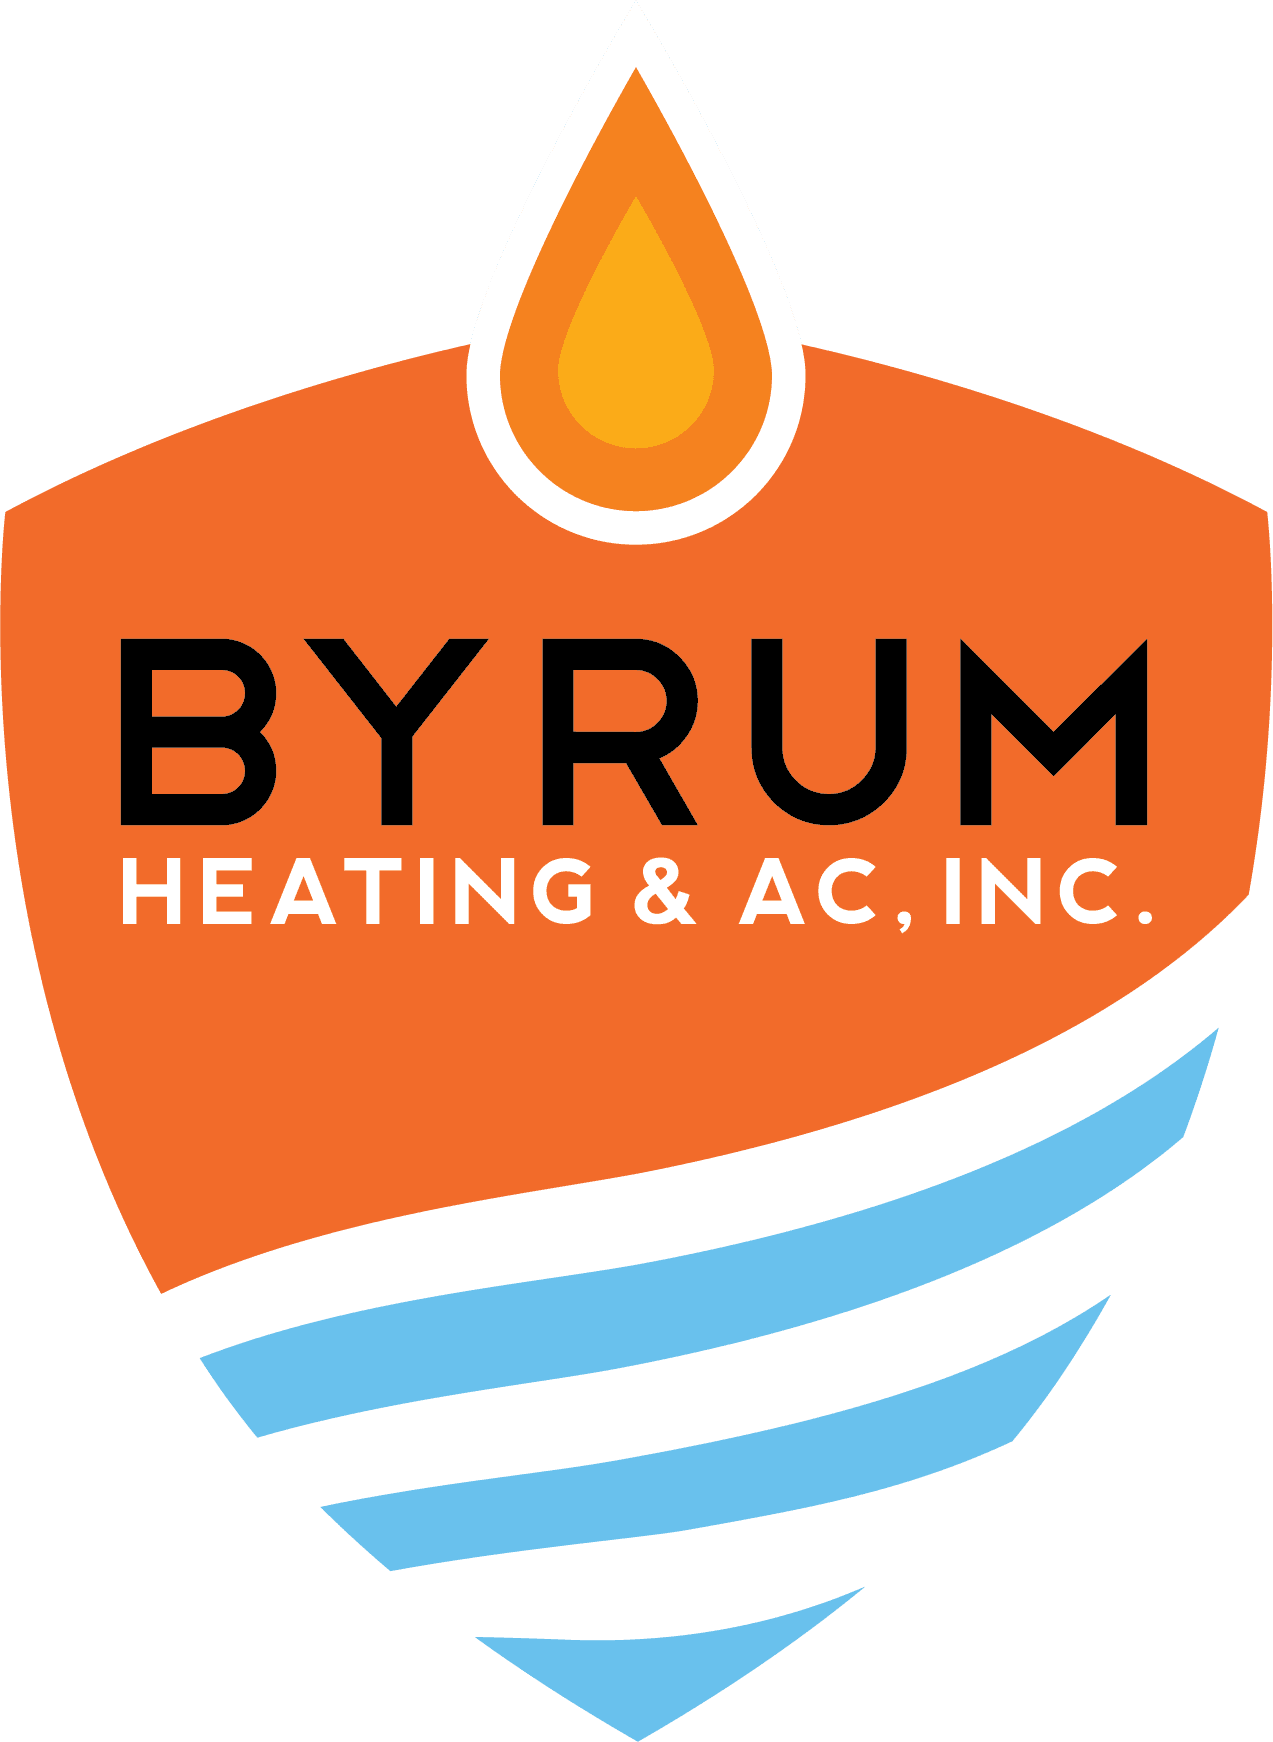 Byrum Heating & AC, Inc.